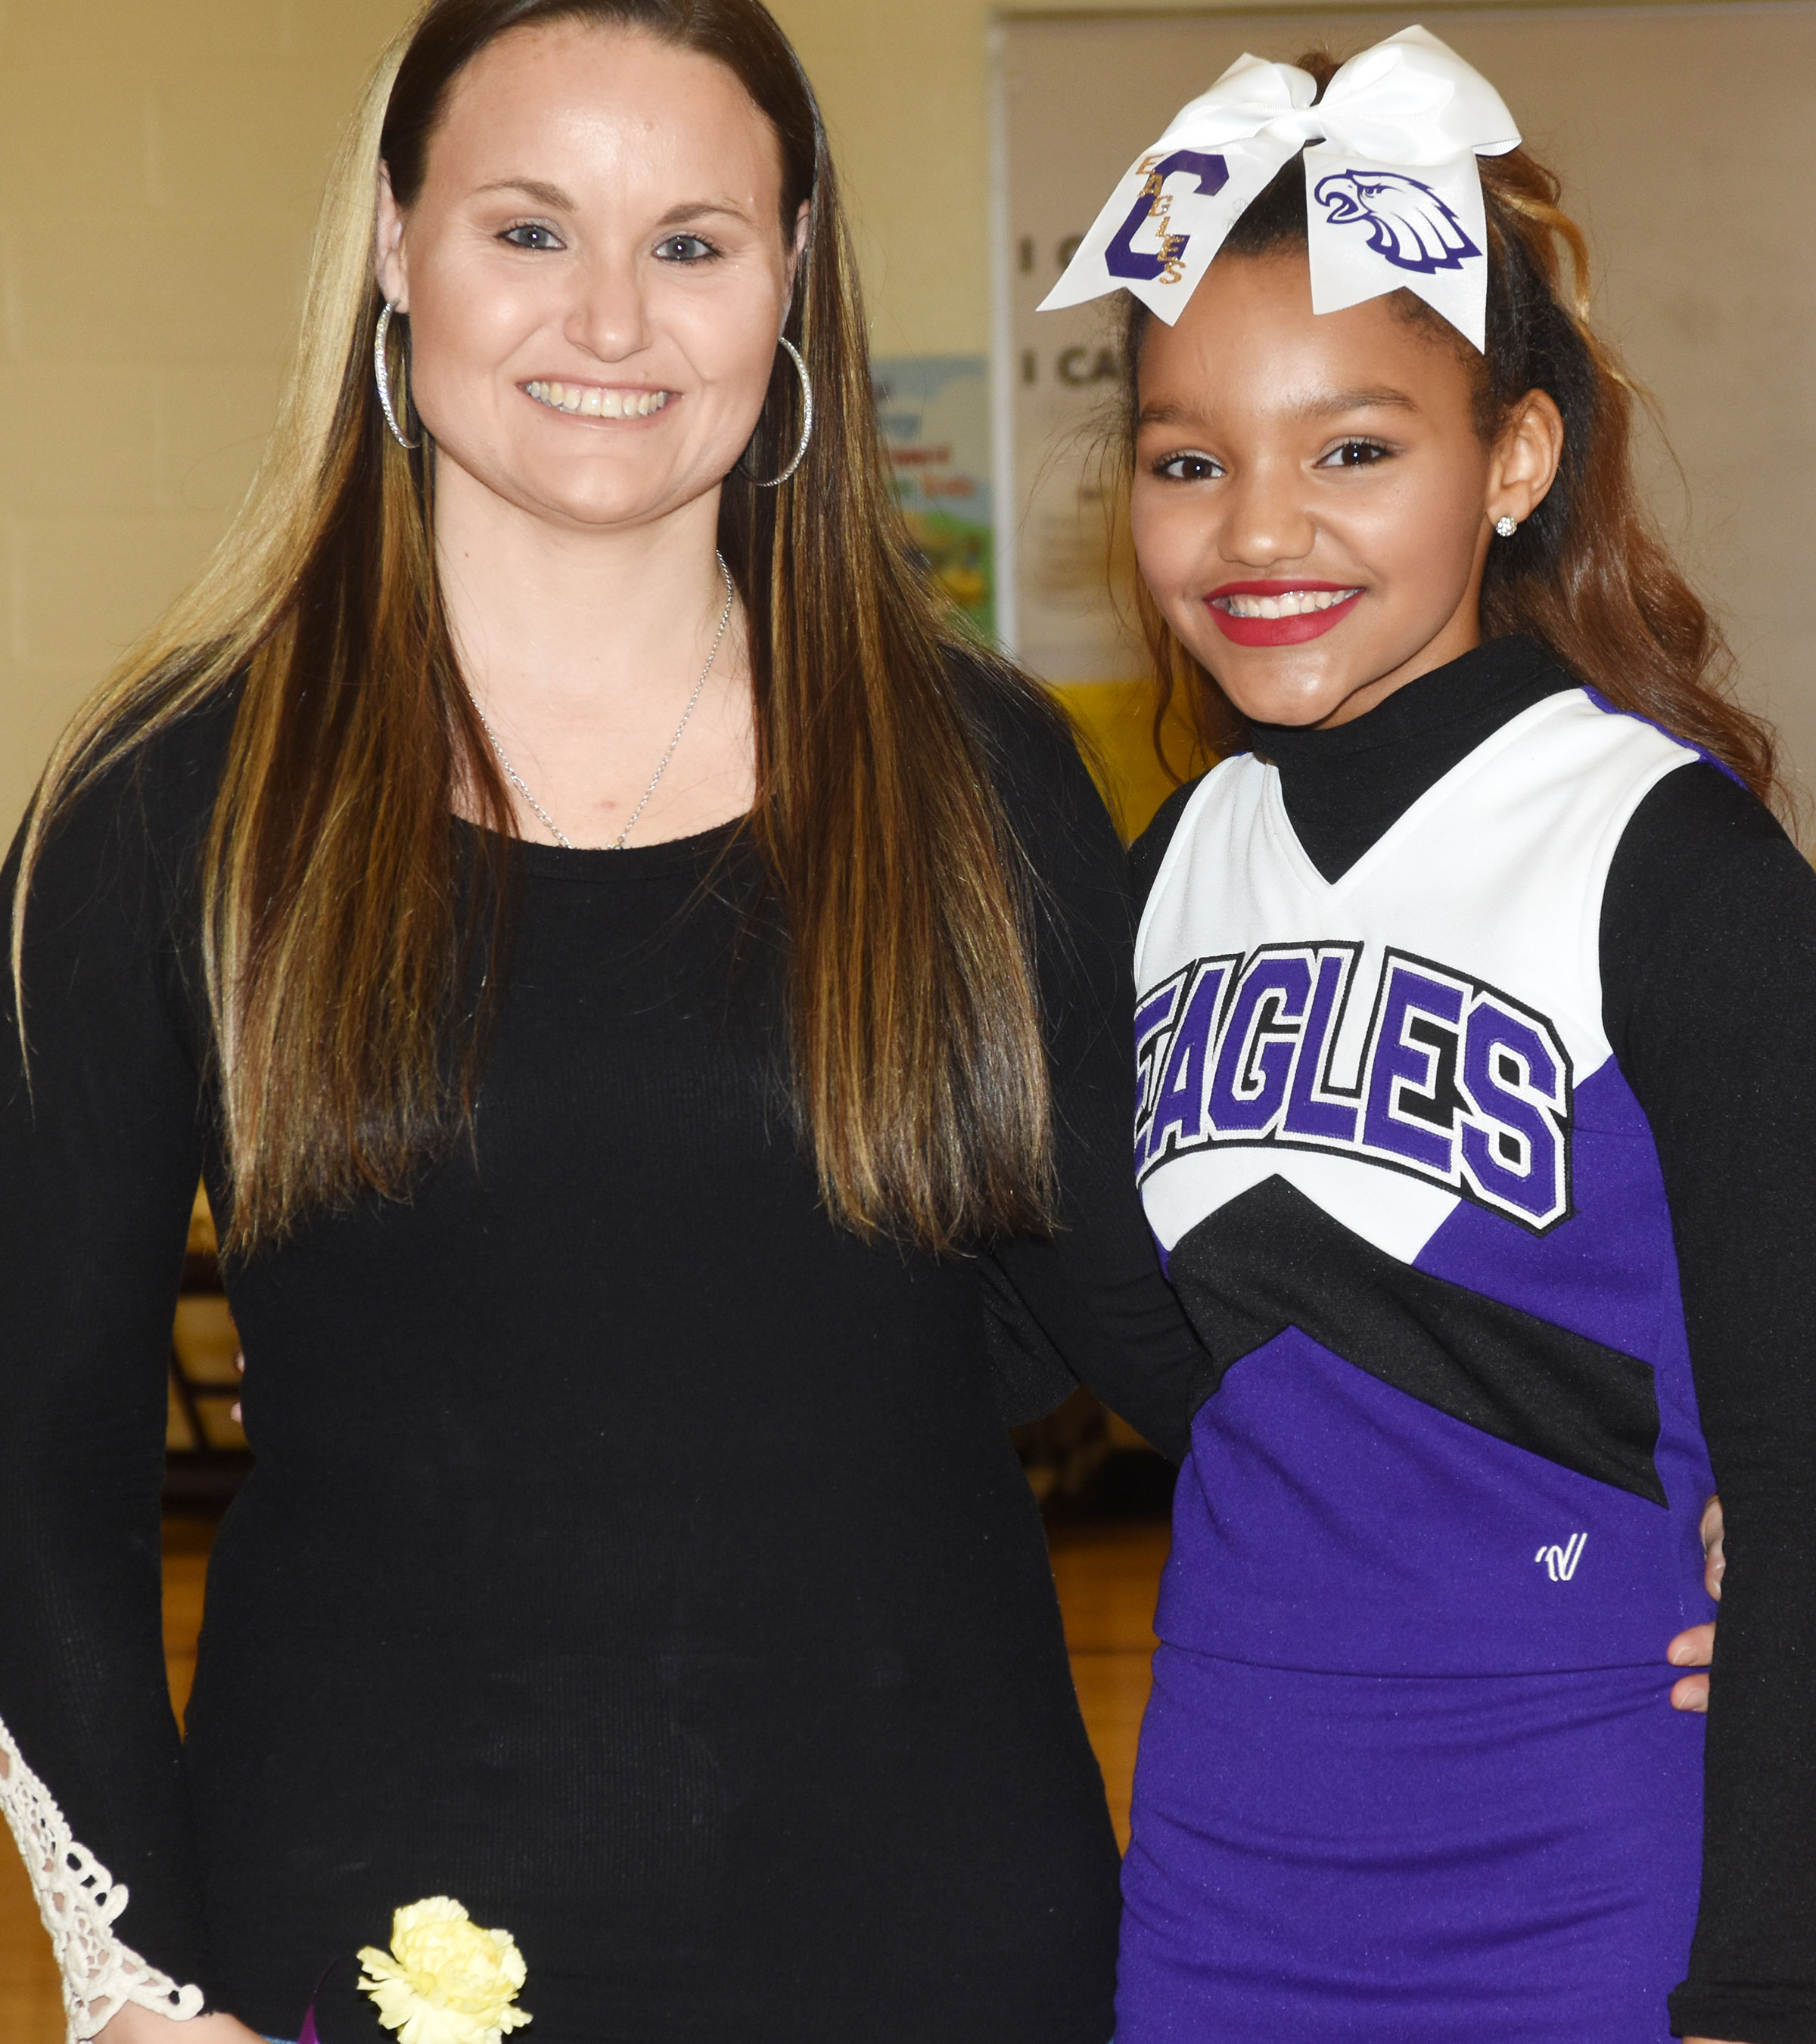 CMS eighth-grade cheerleader Alexis Thomas is honored.